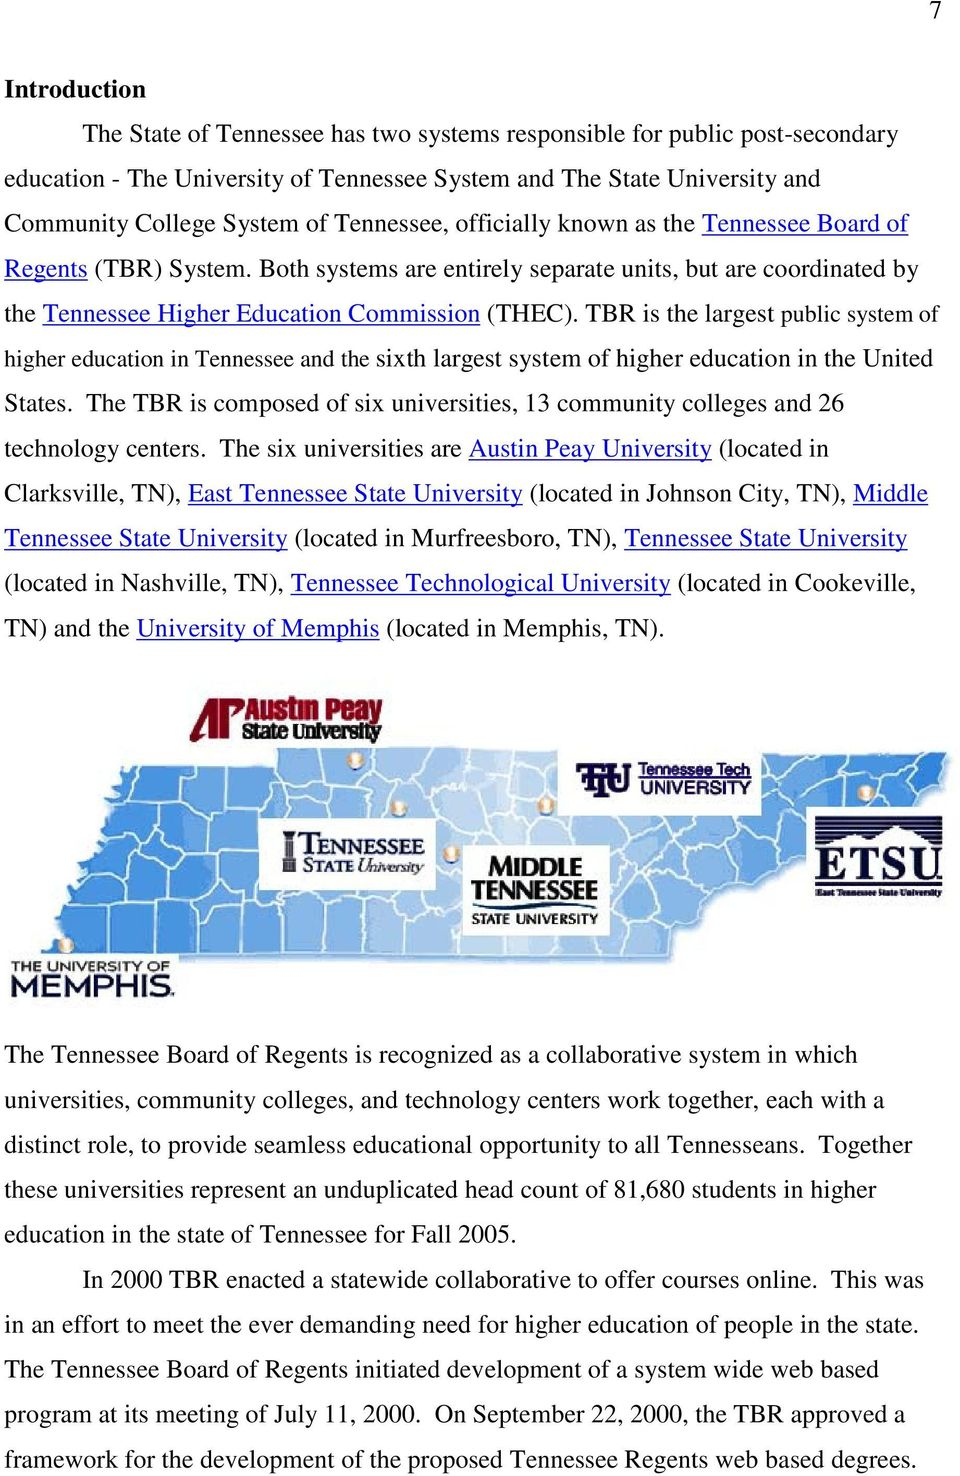 TBR is the largest public system of higher education in Tennessee and the sixth largest system of higher education in the United States.